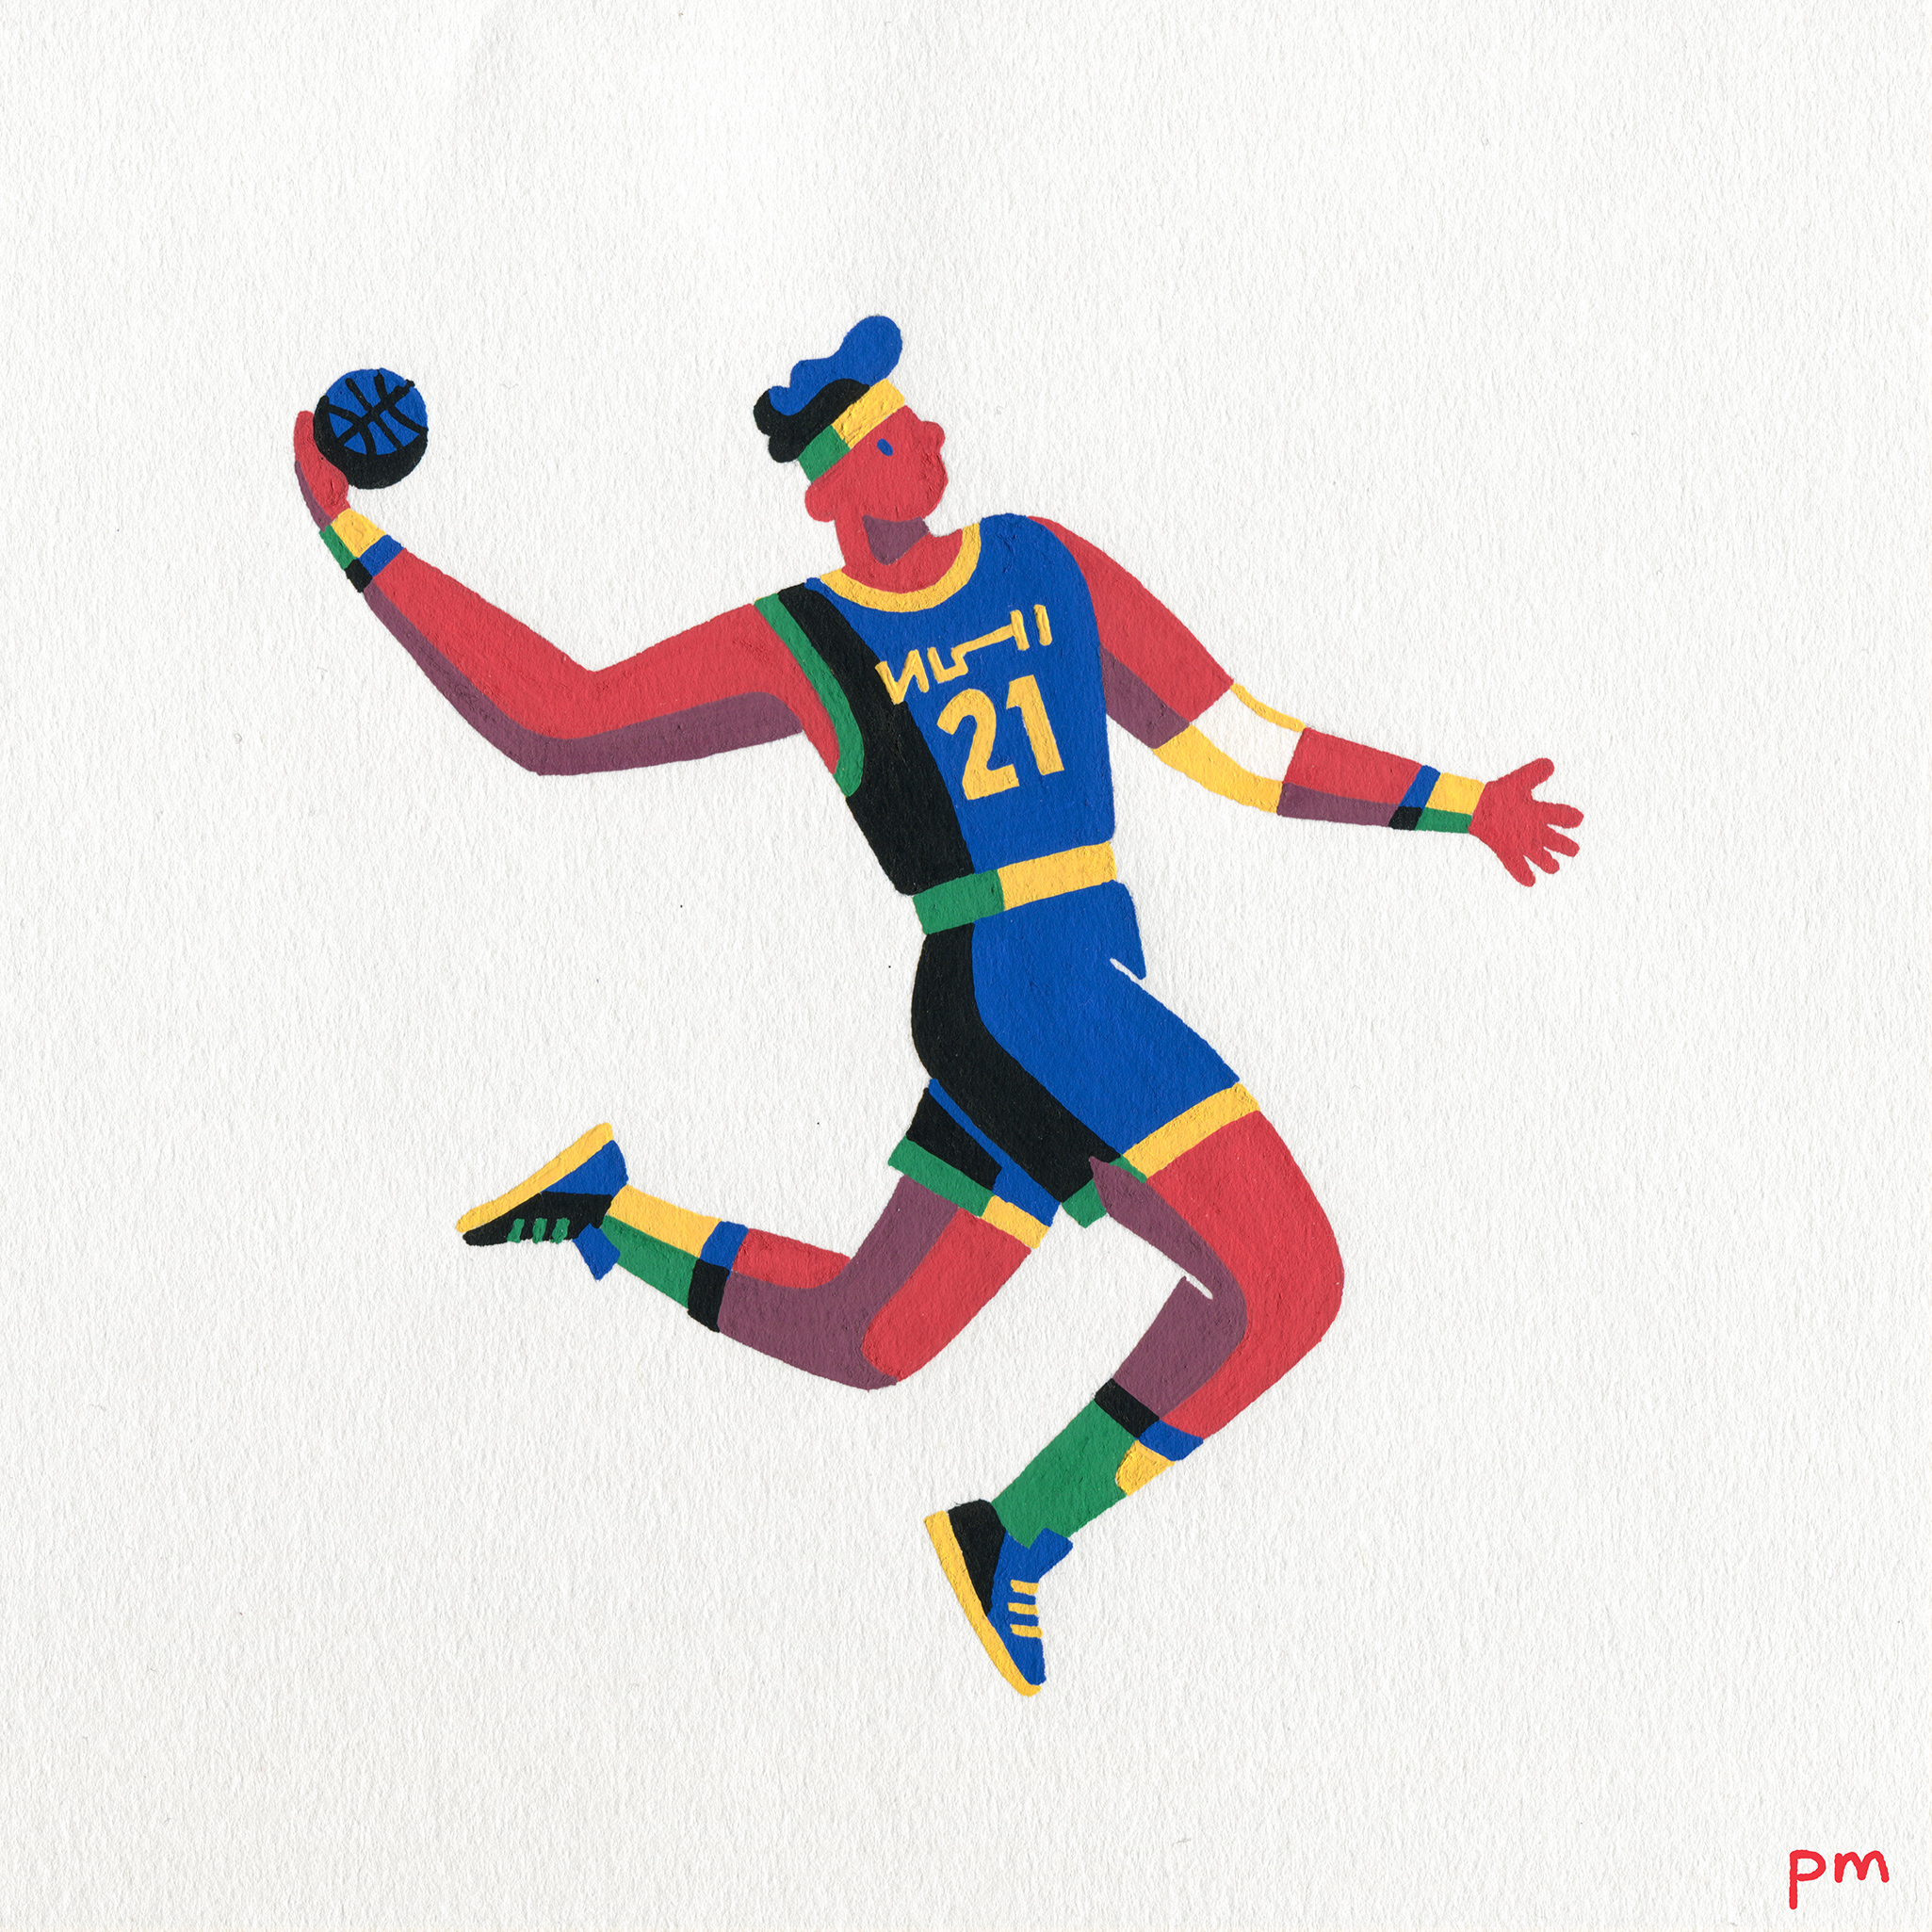 Here is an illustrated basketball player, mid air about to slam dunk created for my sports series, In Motion, inspired by the NBA season